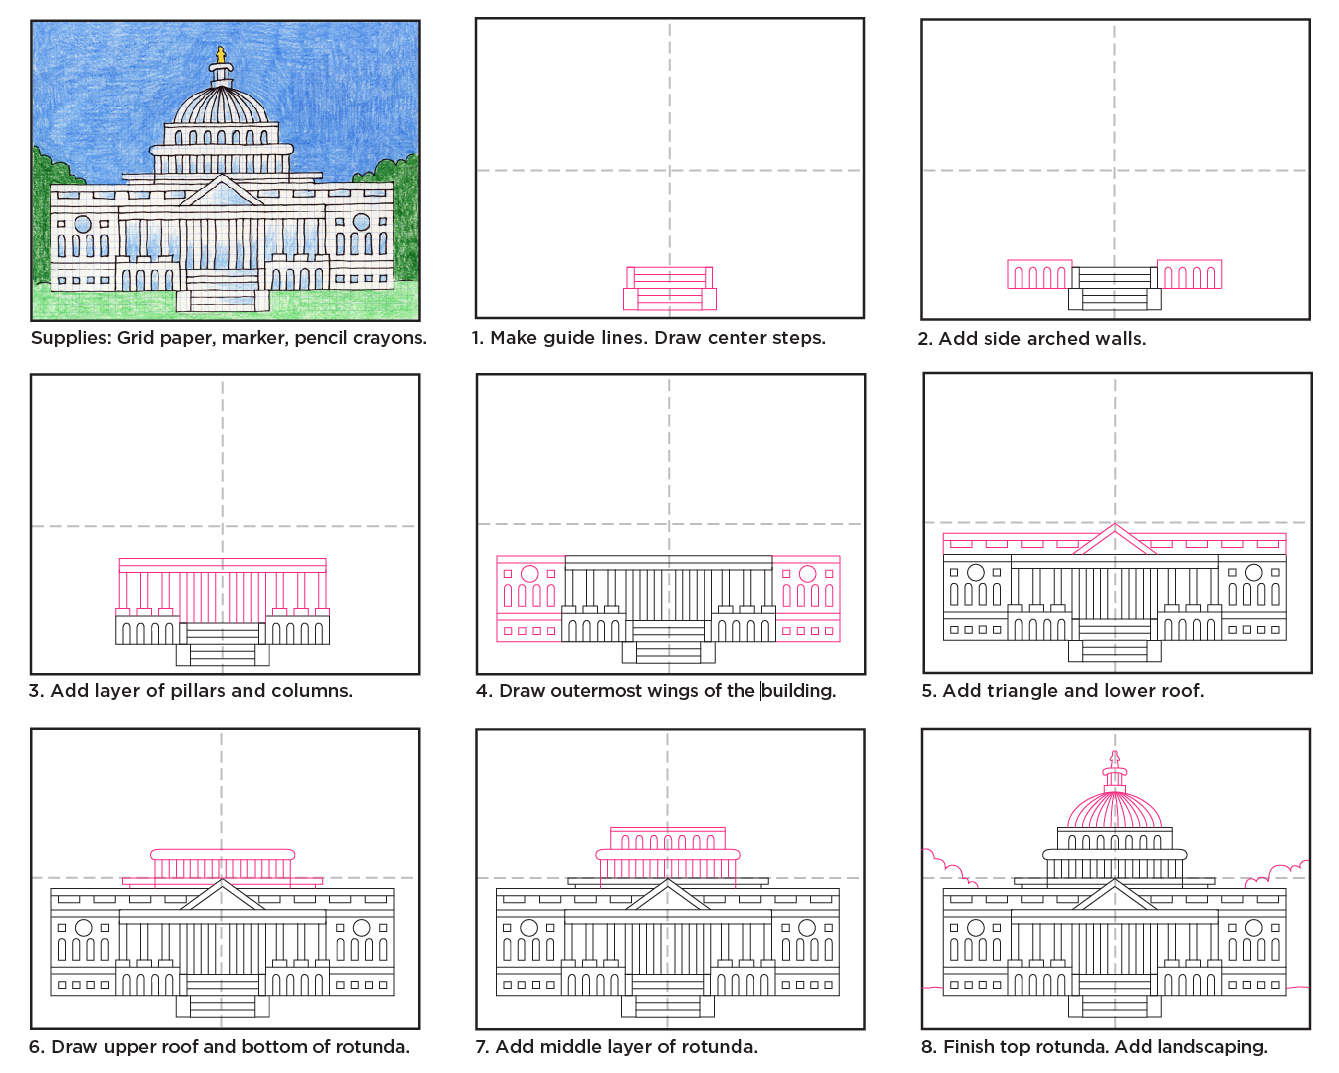 Us capitol art projects for kids Step by step to build a house